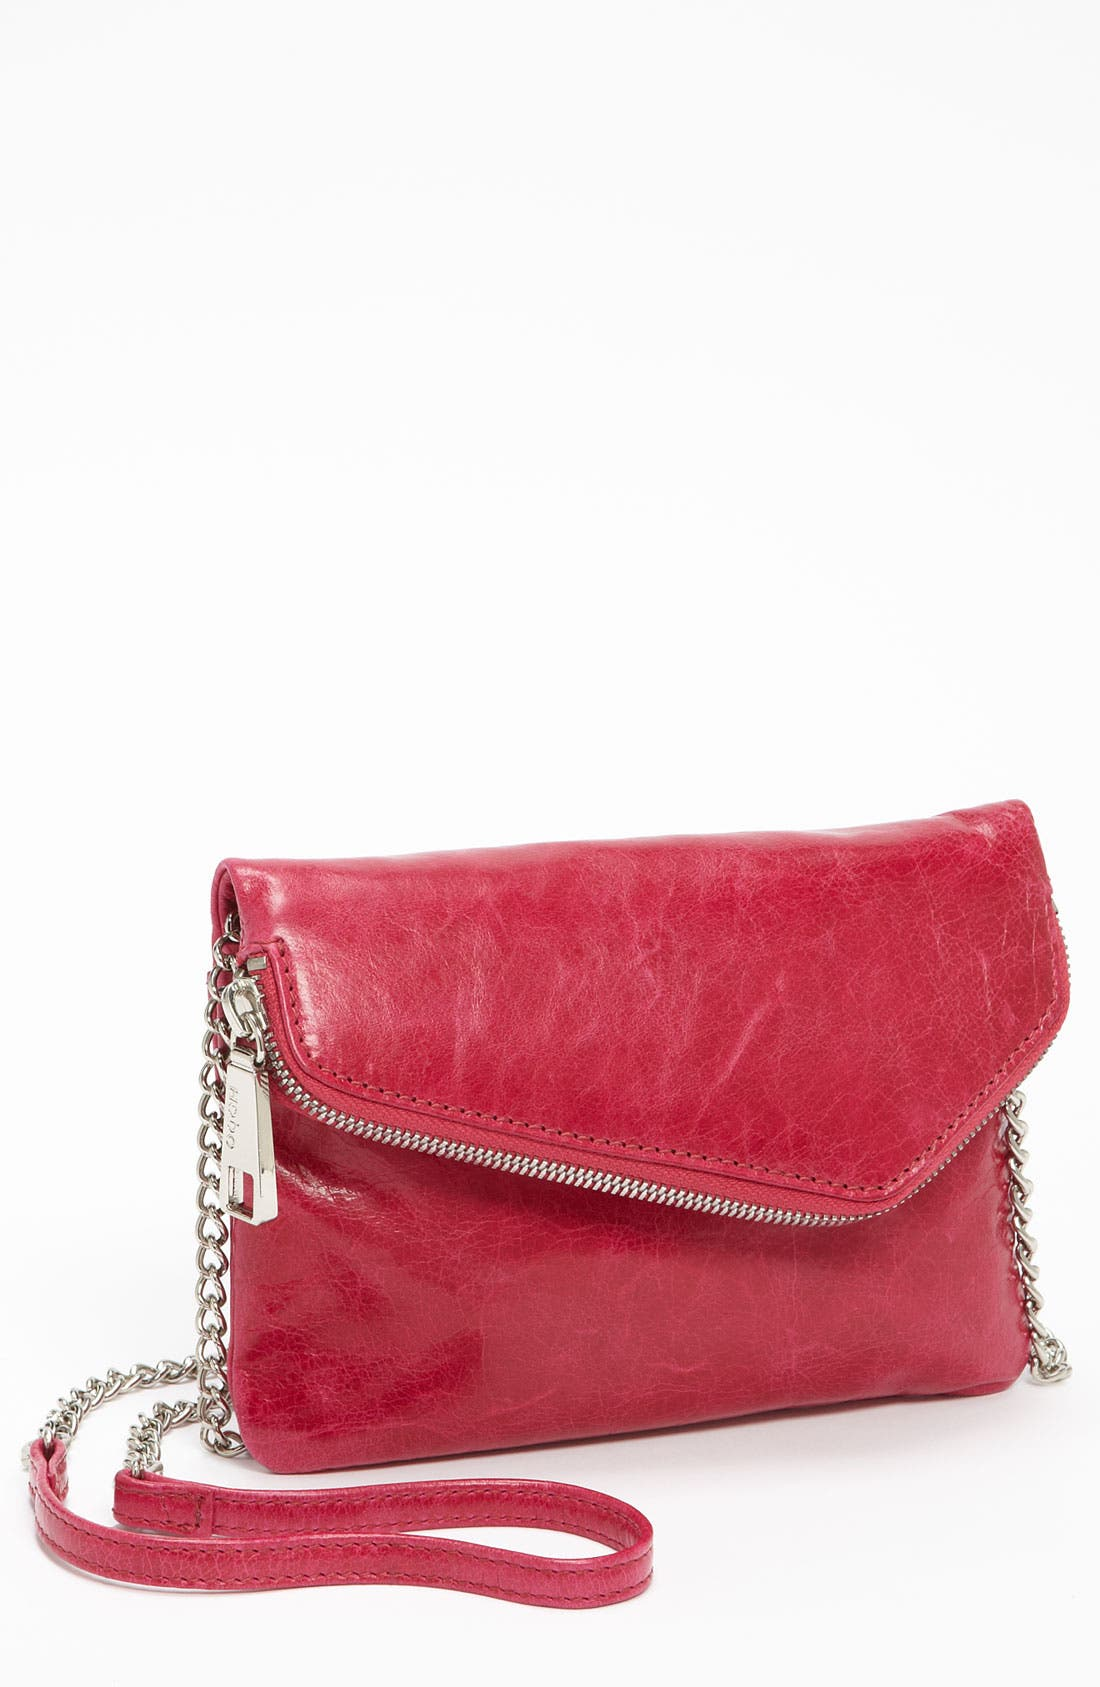 Alternate Image 1 Selected - Hobo 'Daria' Leather Crossbody Bag